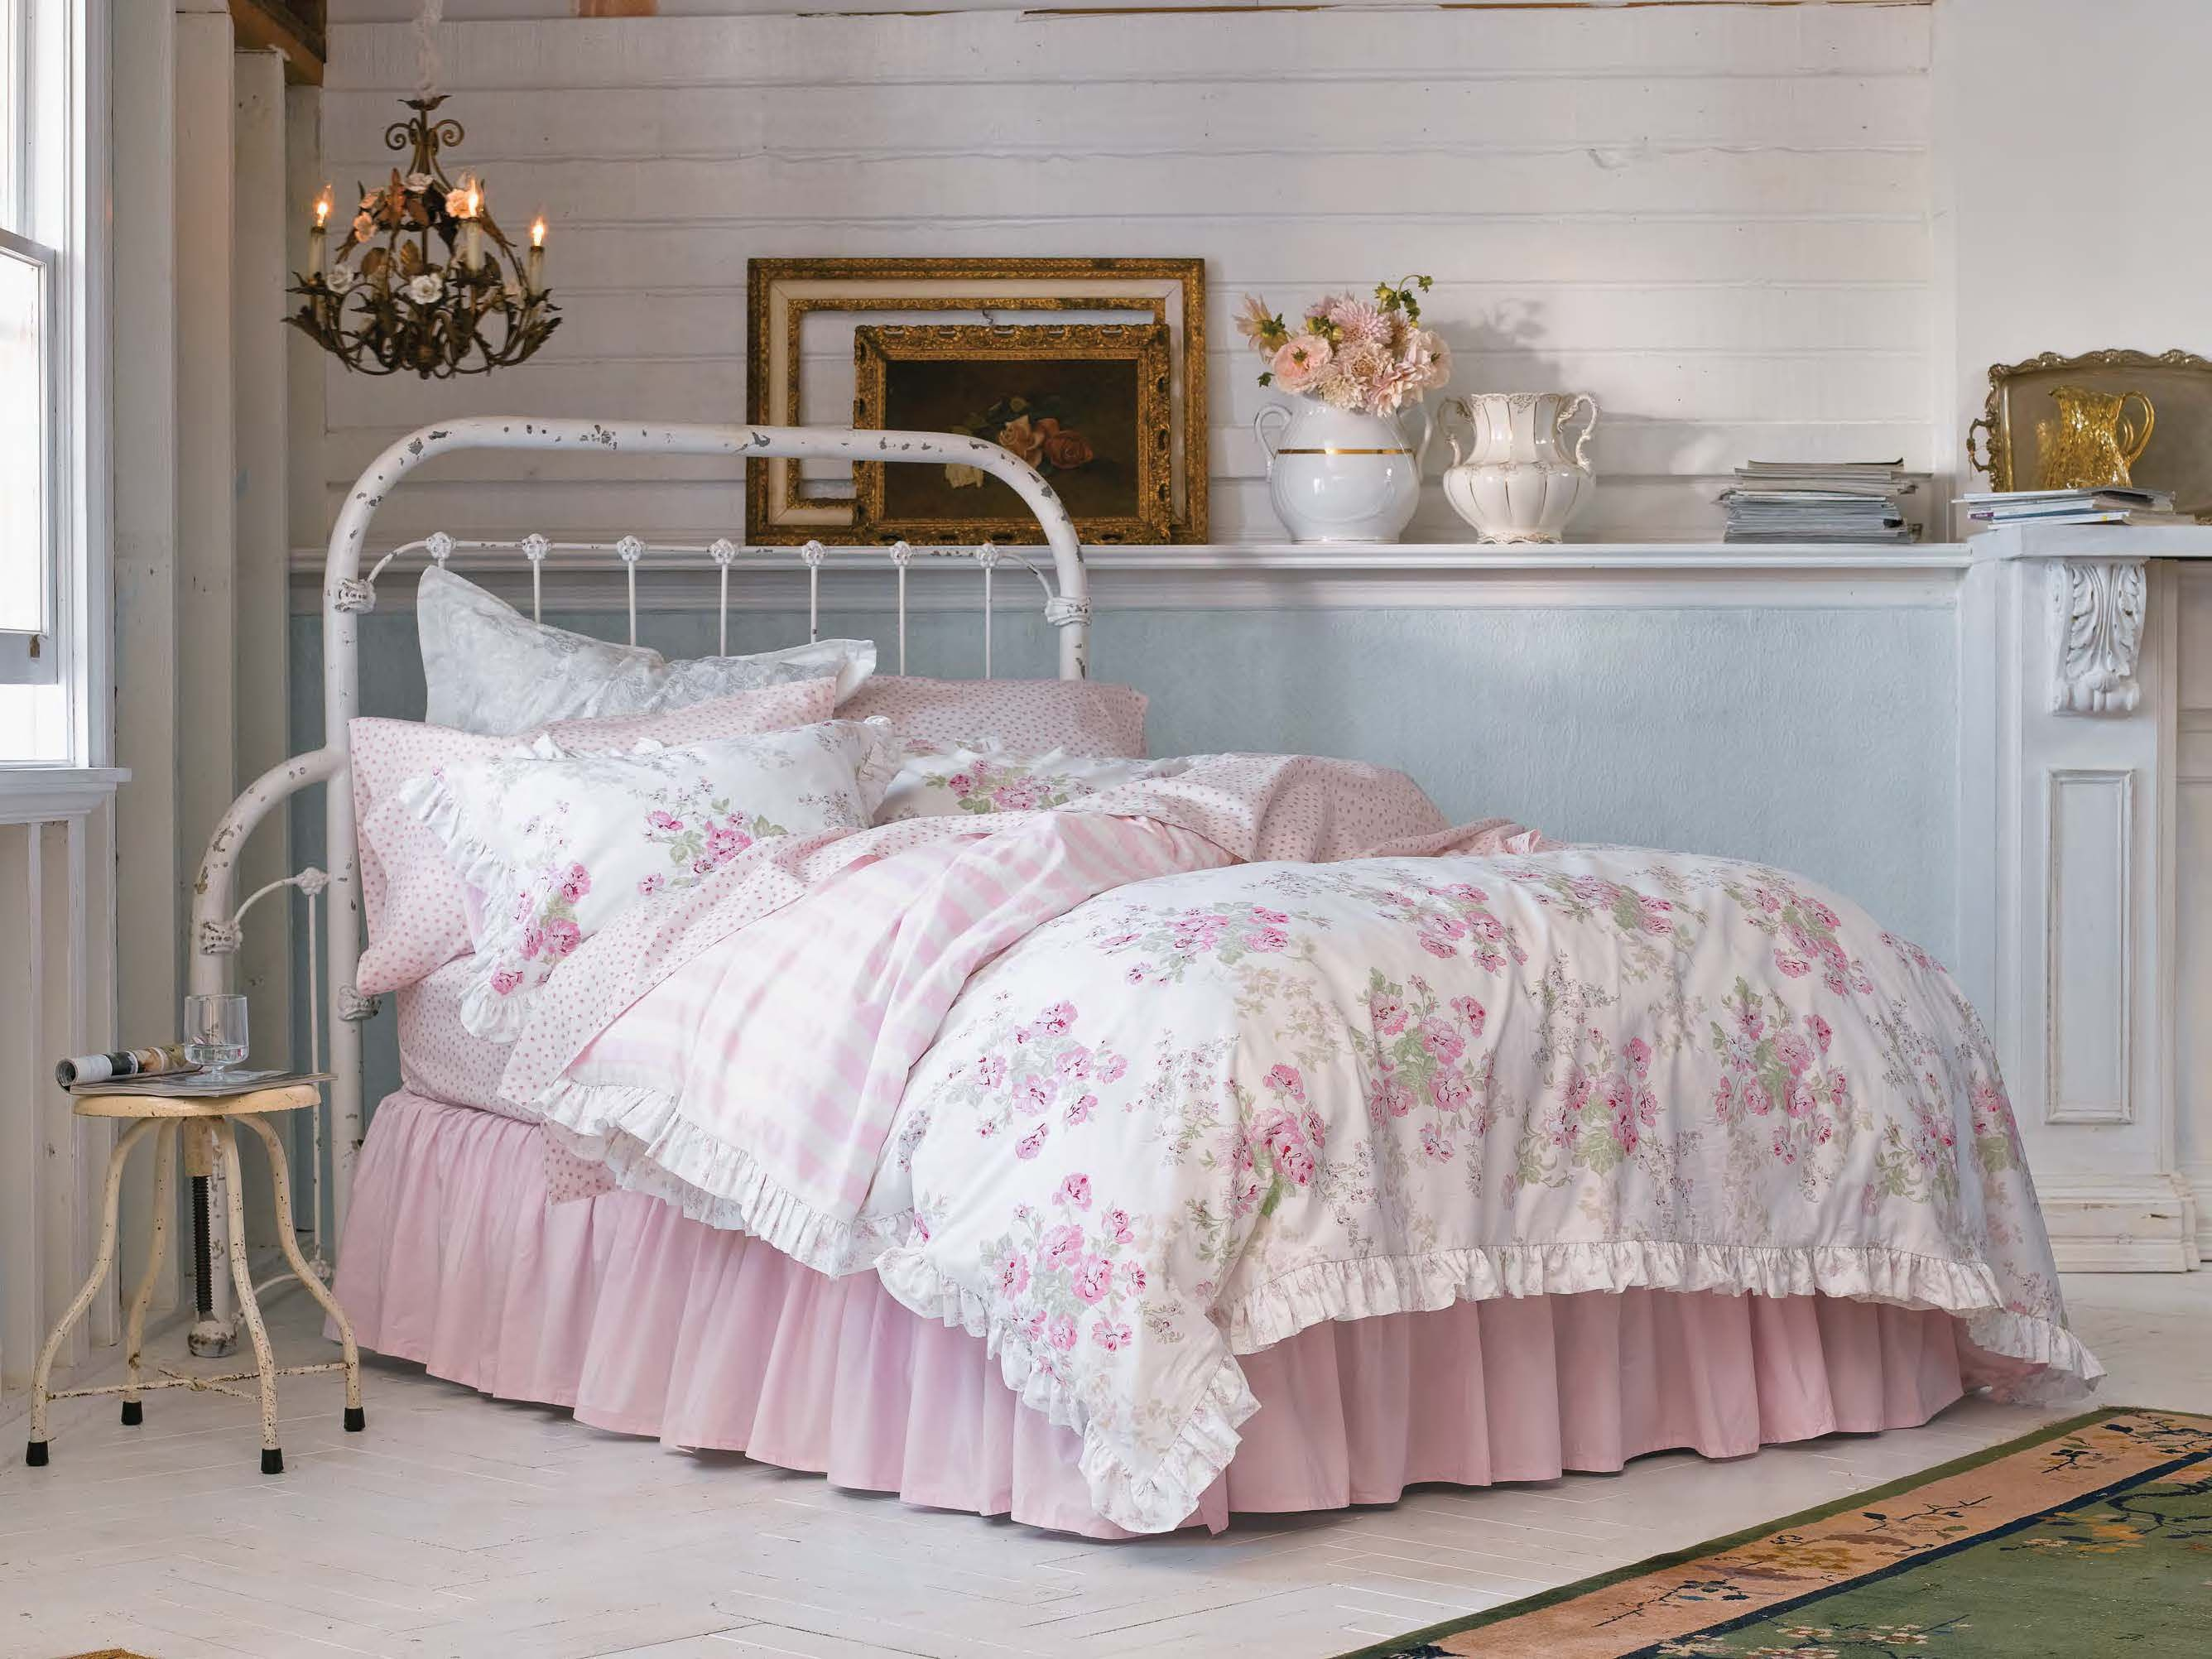 Target Queen Quilt Cover Simply Shabby Chic Essex Floral Duvet 79 99 99 99 At